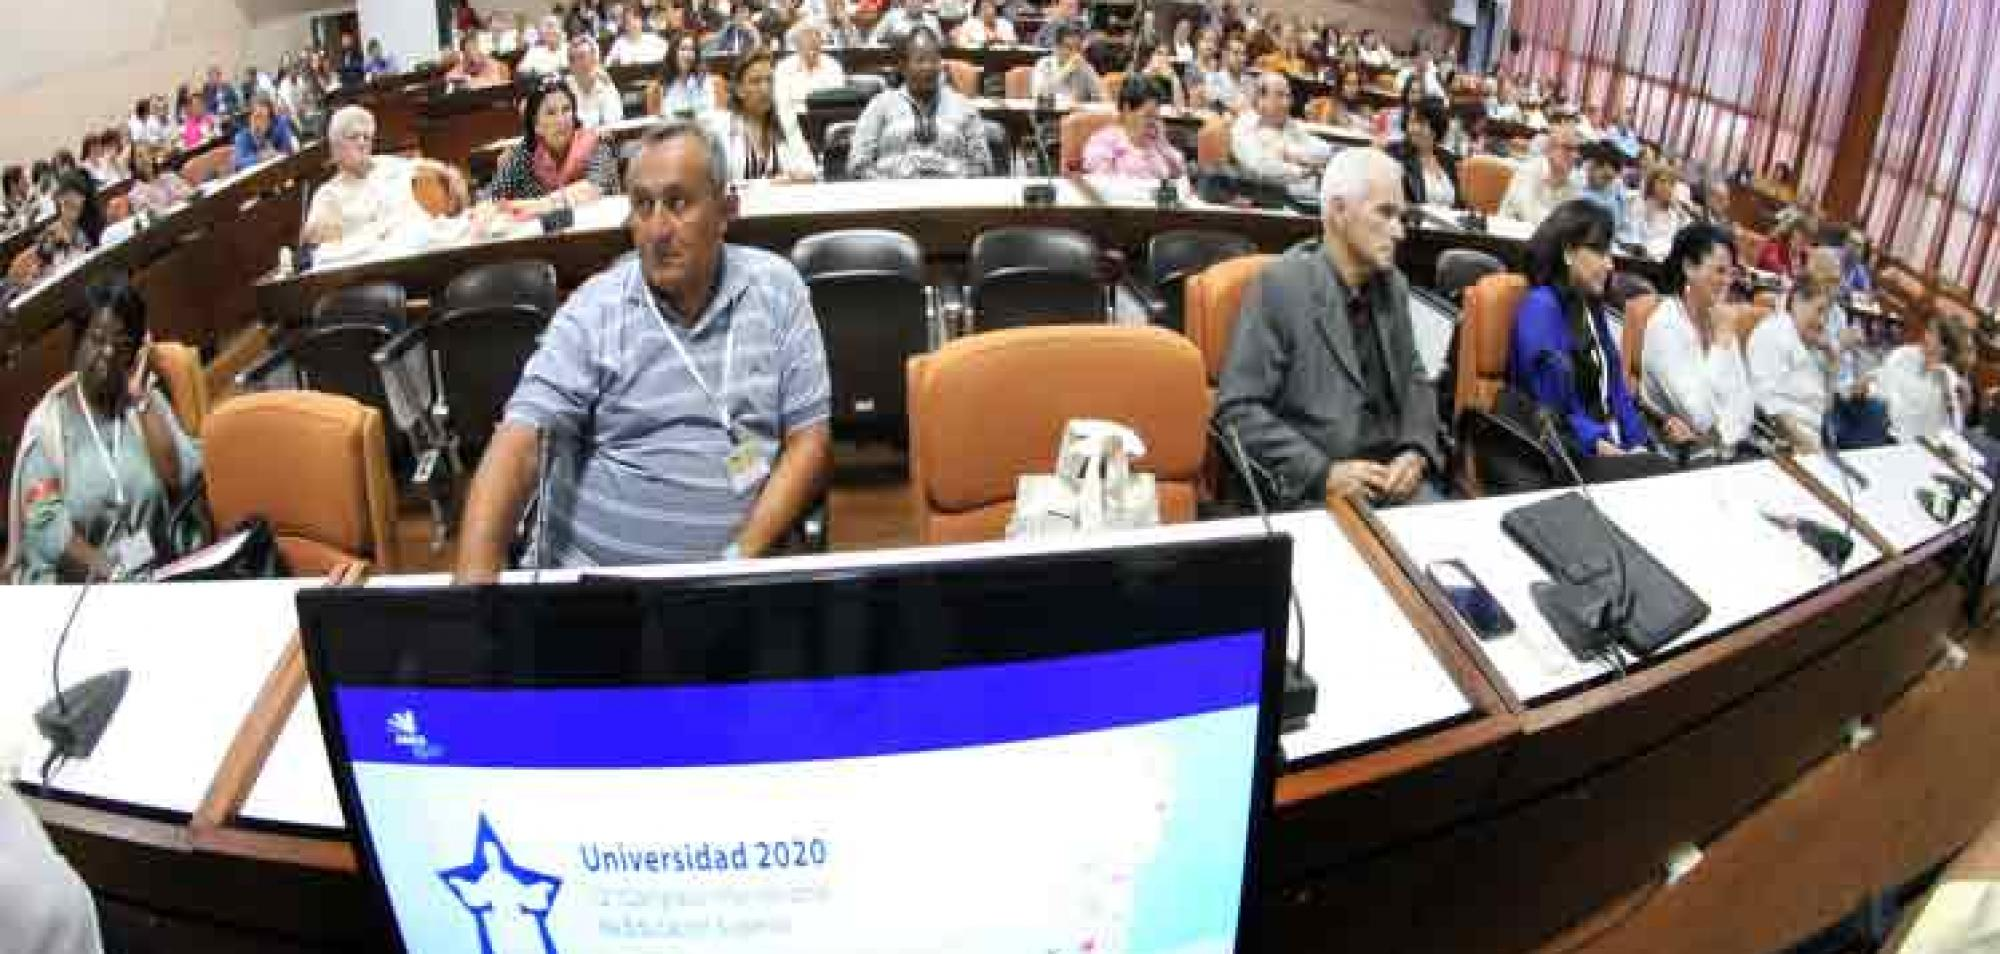 Cuban Forum Pedagogia 2019 Debates Education in Latin America